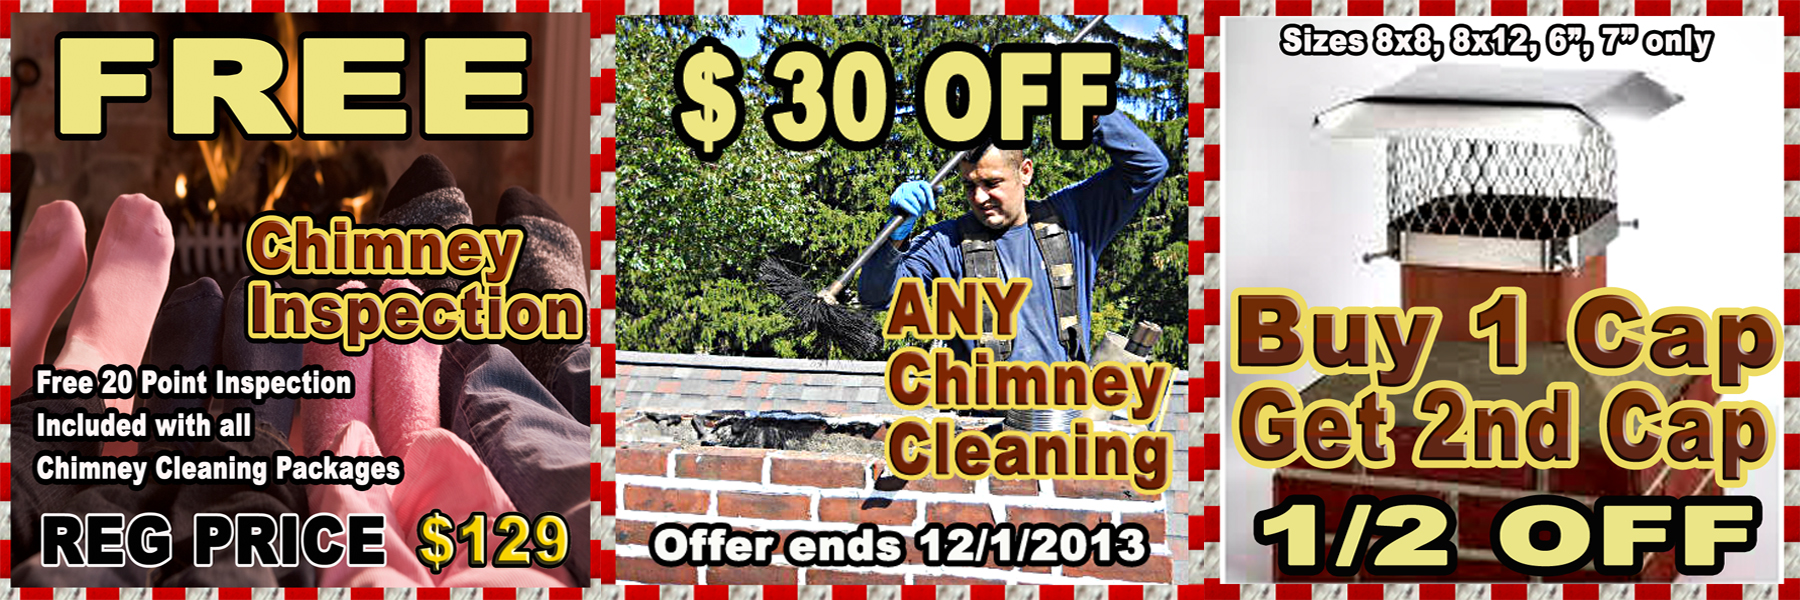 ProLine Chimney Cleaning Chimney Inspection Chimney Cap Coupon